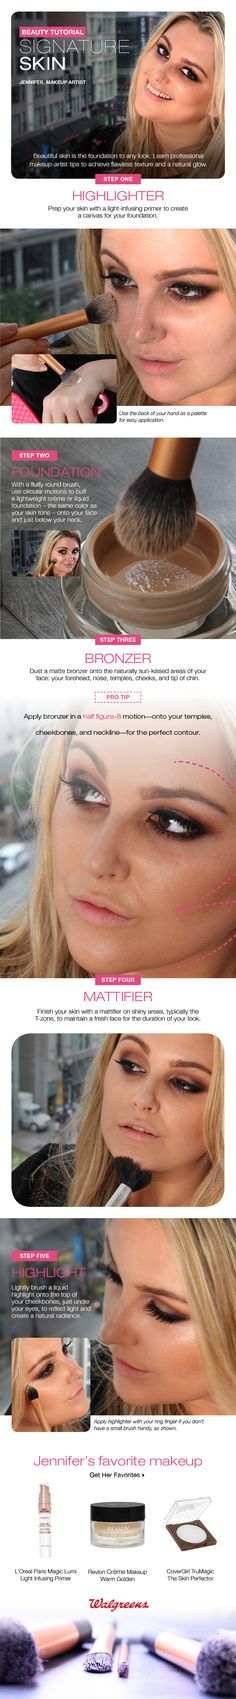 Beautiful skin is the foundation to any look. Learn makeup artist tricks to achieve it yourself.